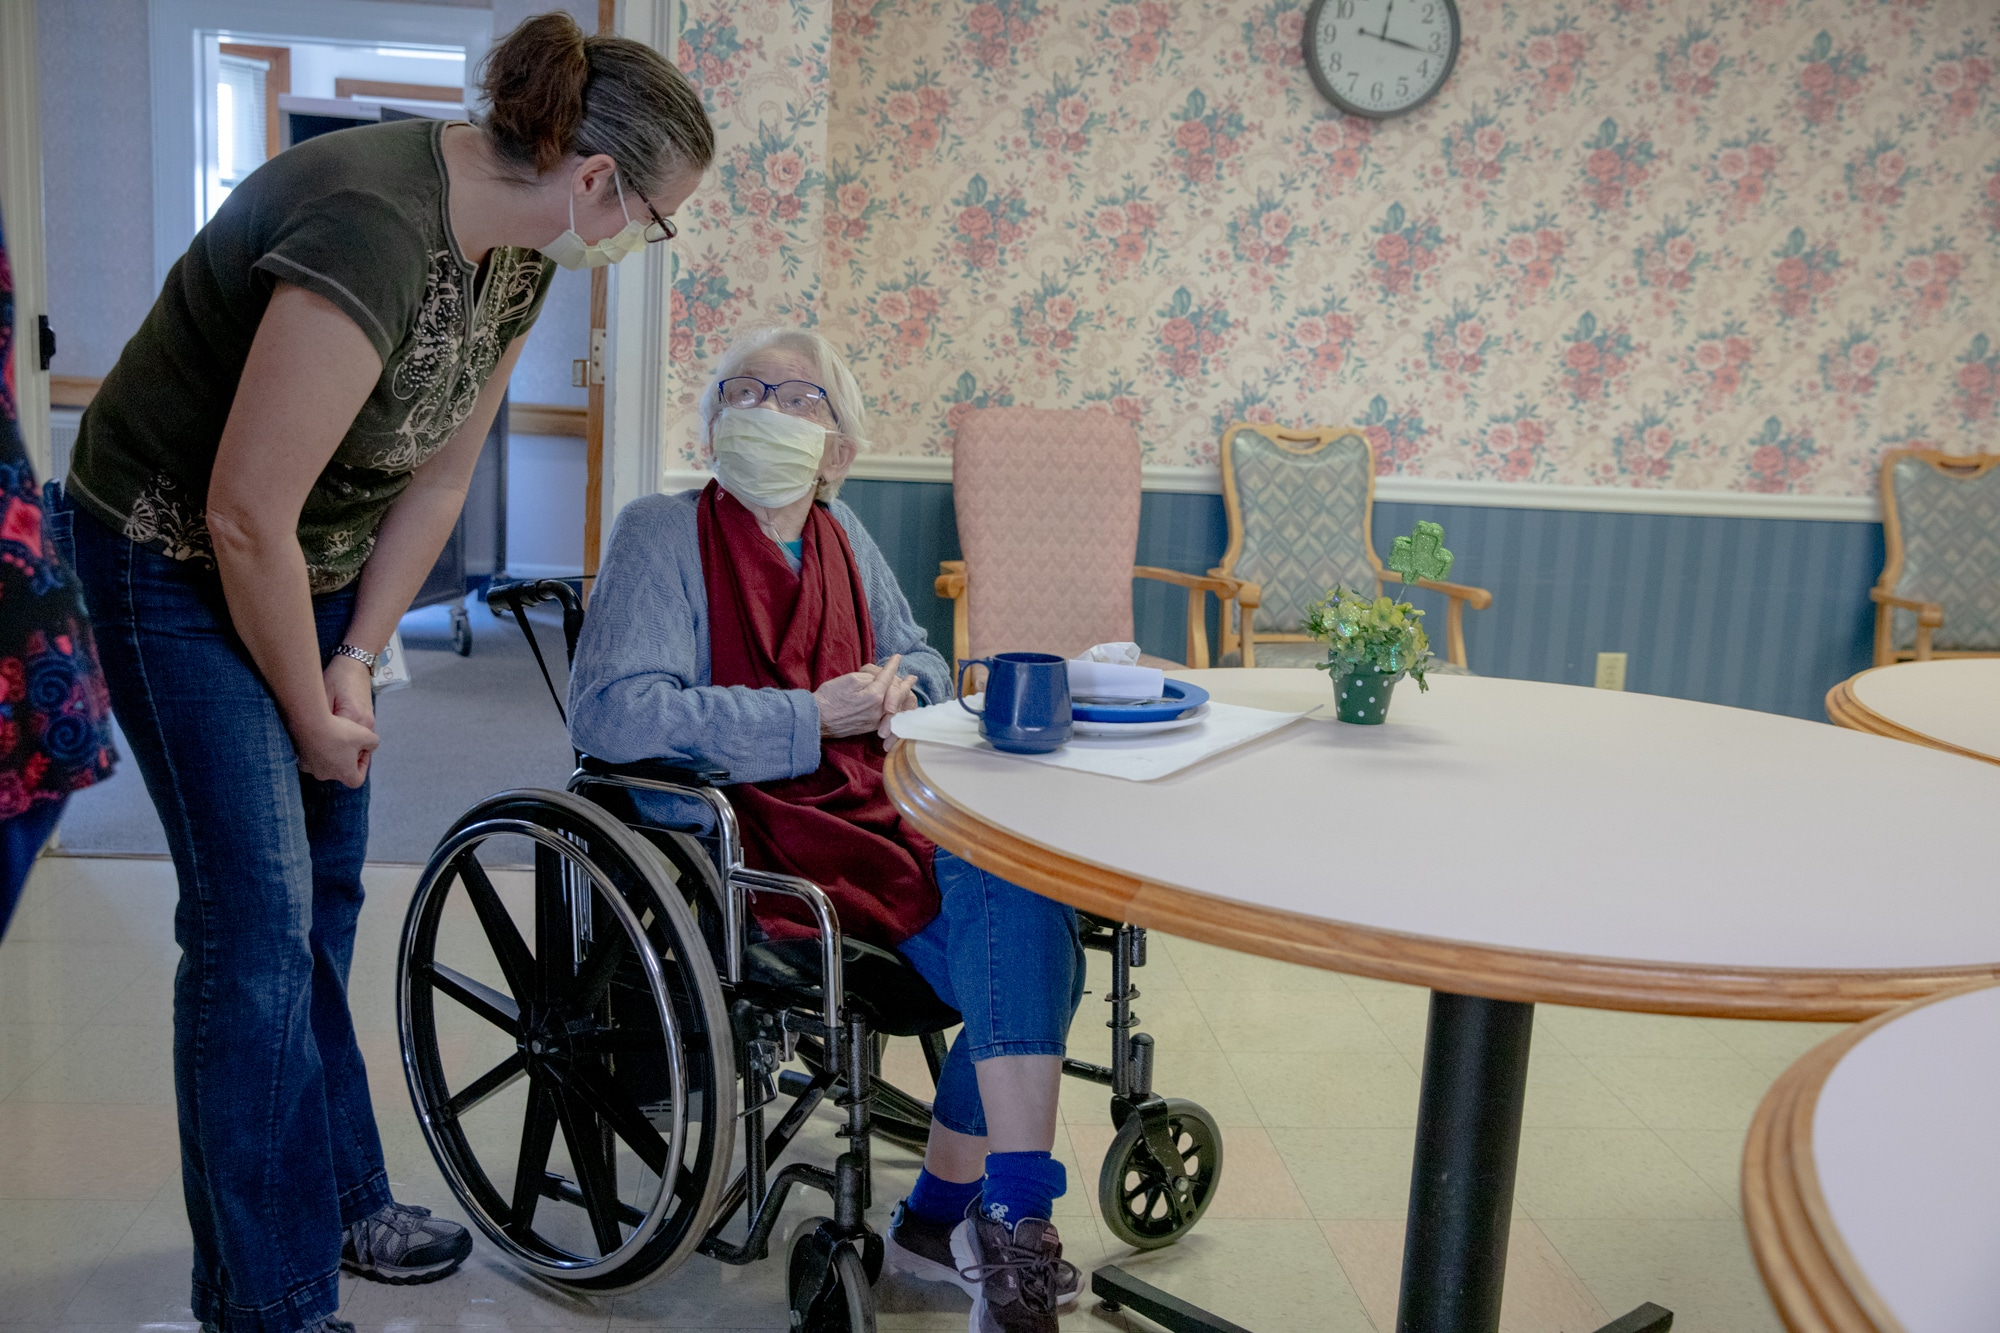 'The clouds are starting to open:' Residents and staff remember hardship, contemplate future one year after COVID hit Connecticut's nursing homes